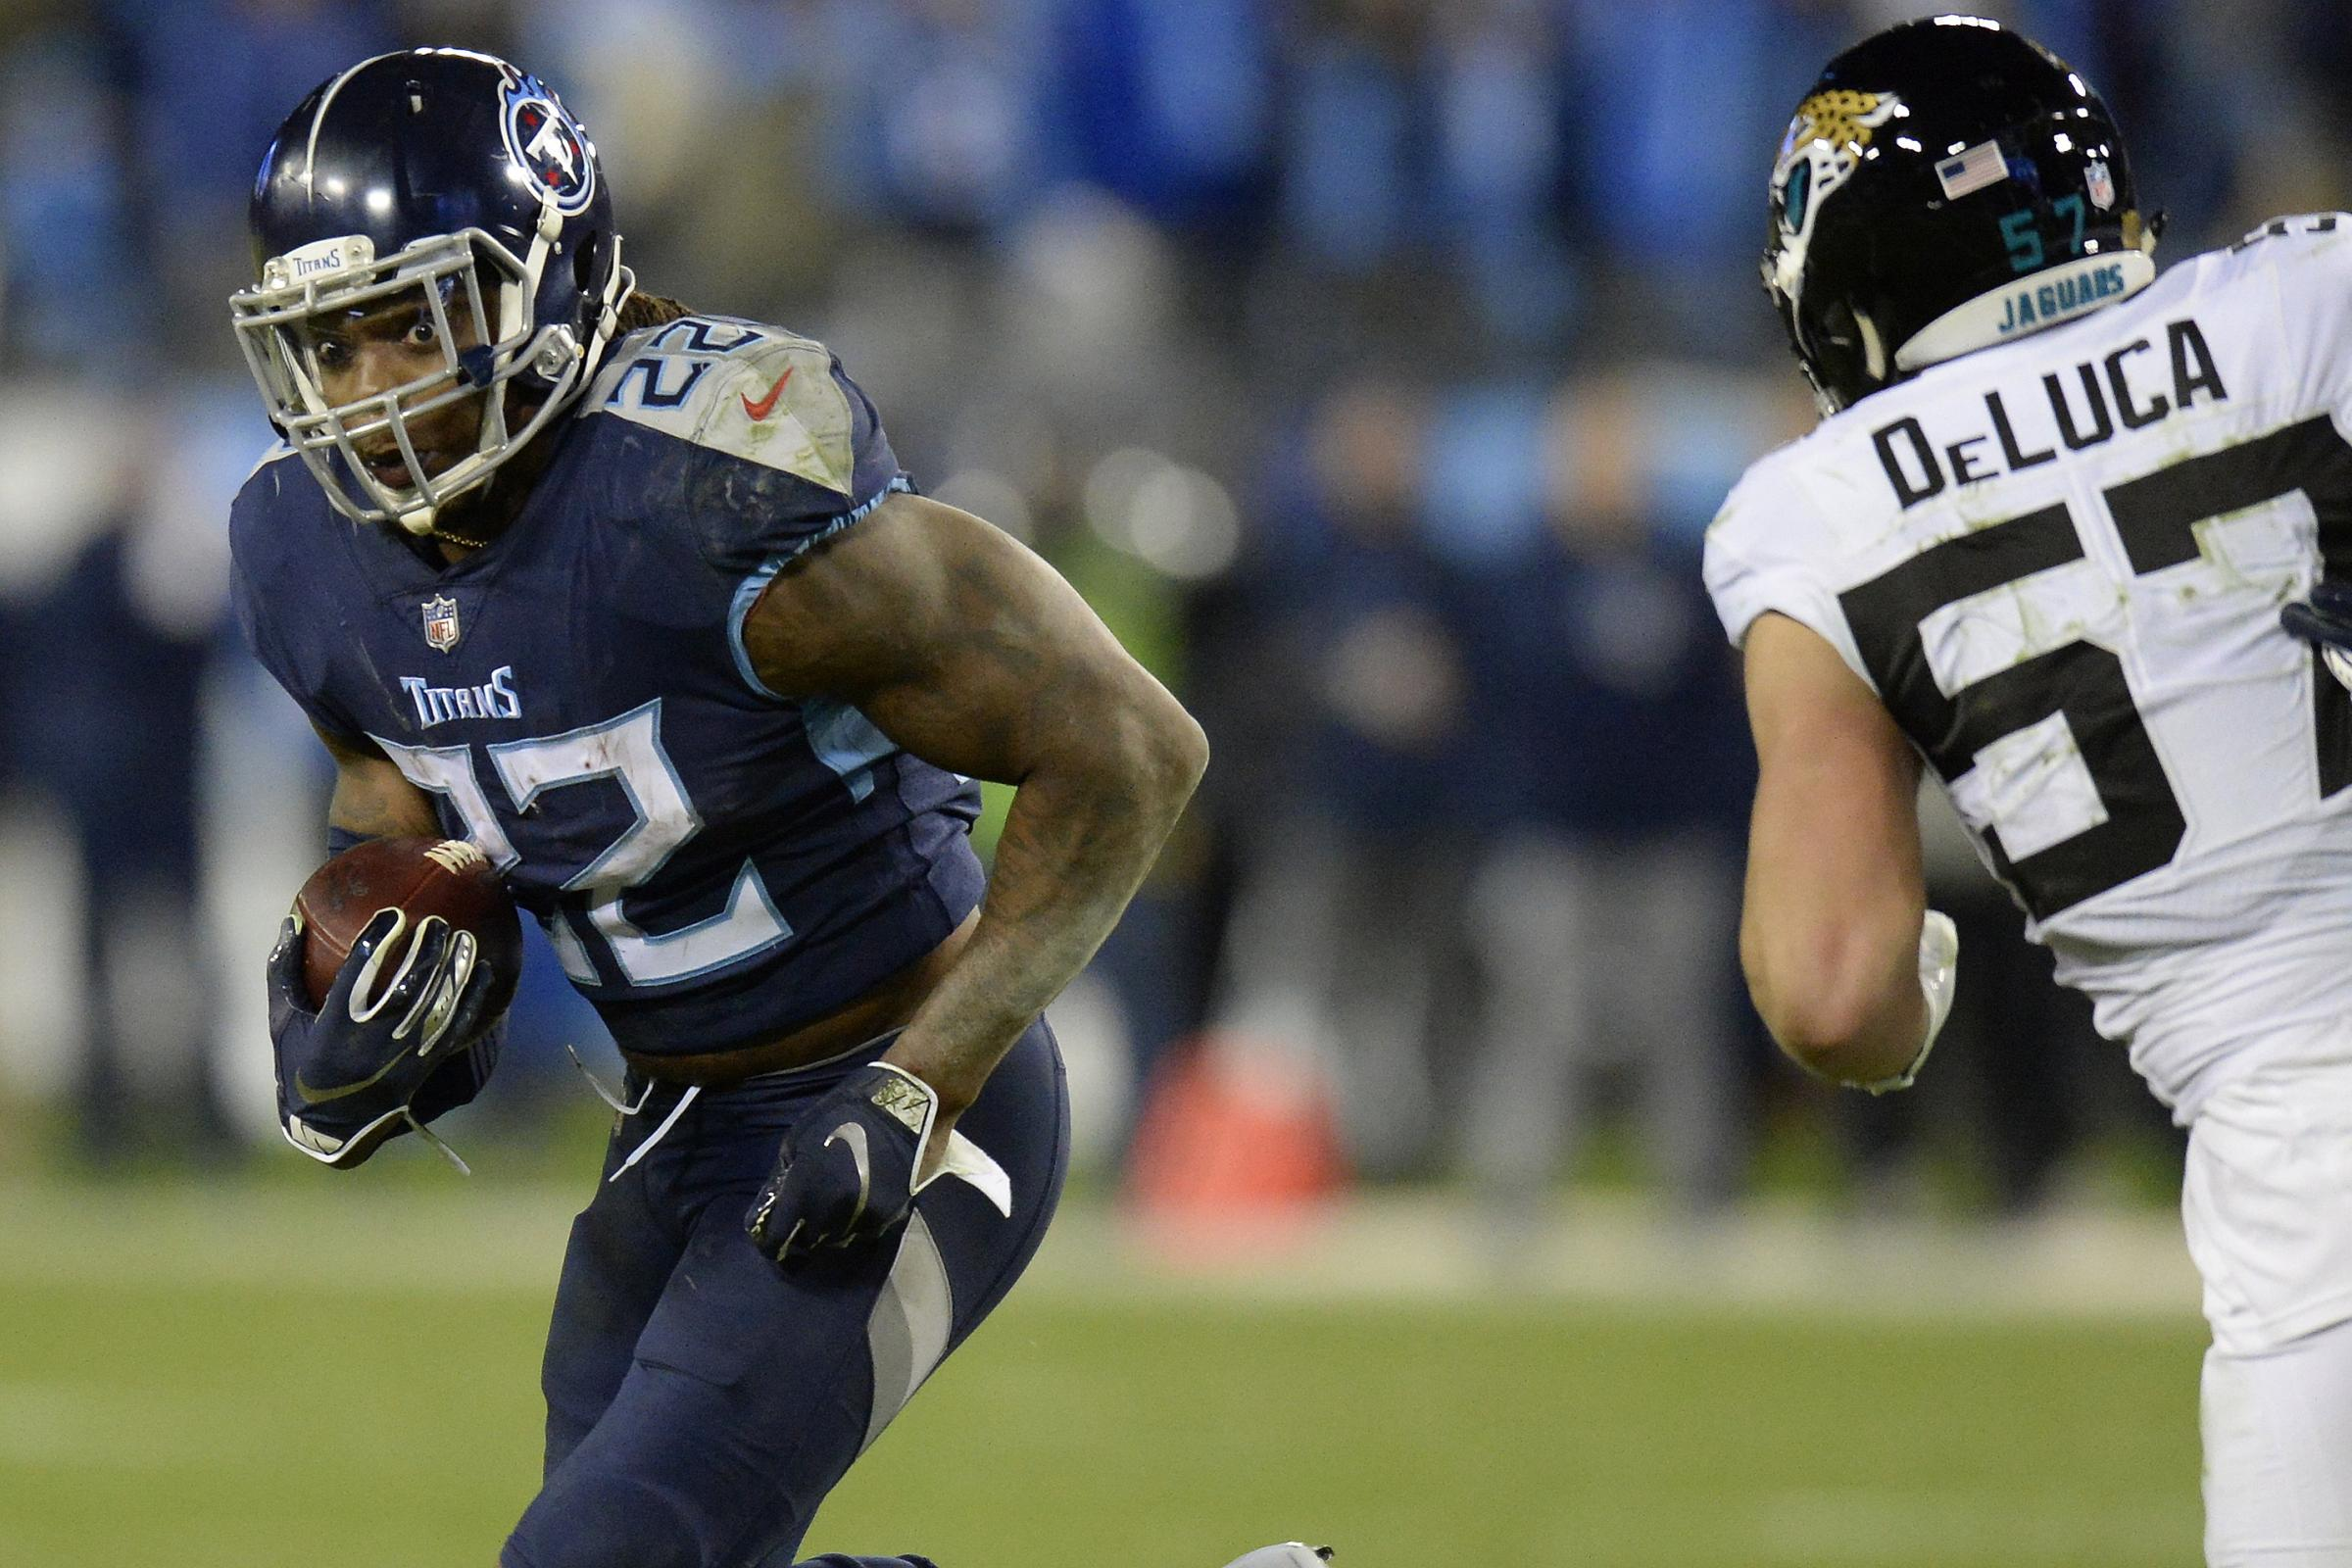 Derrick Henry dominated as the Tennessee Titans beat the Jacksonville Jaguars